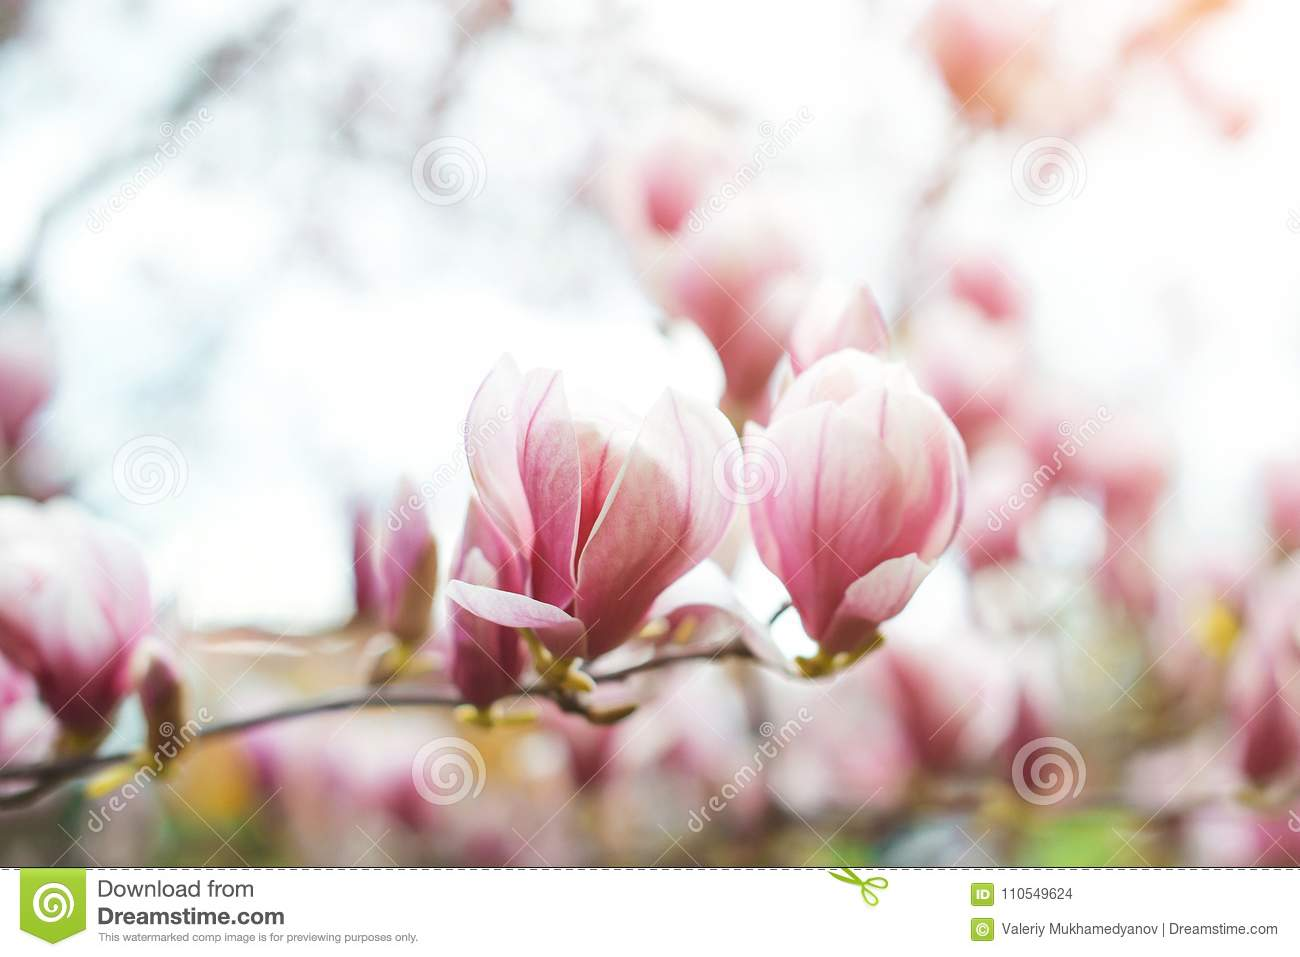 Magnolia flowers in spring time, floral background